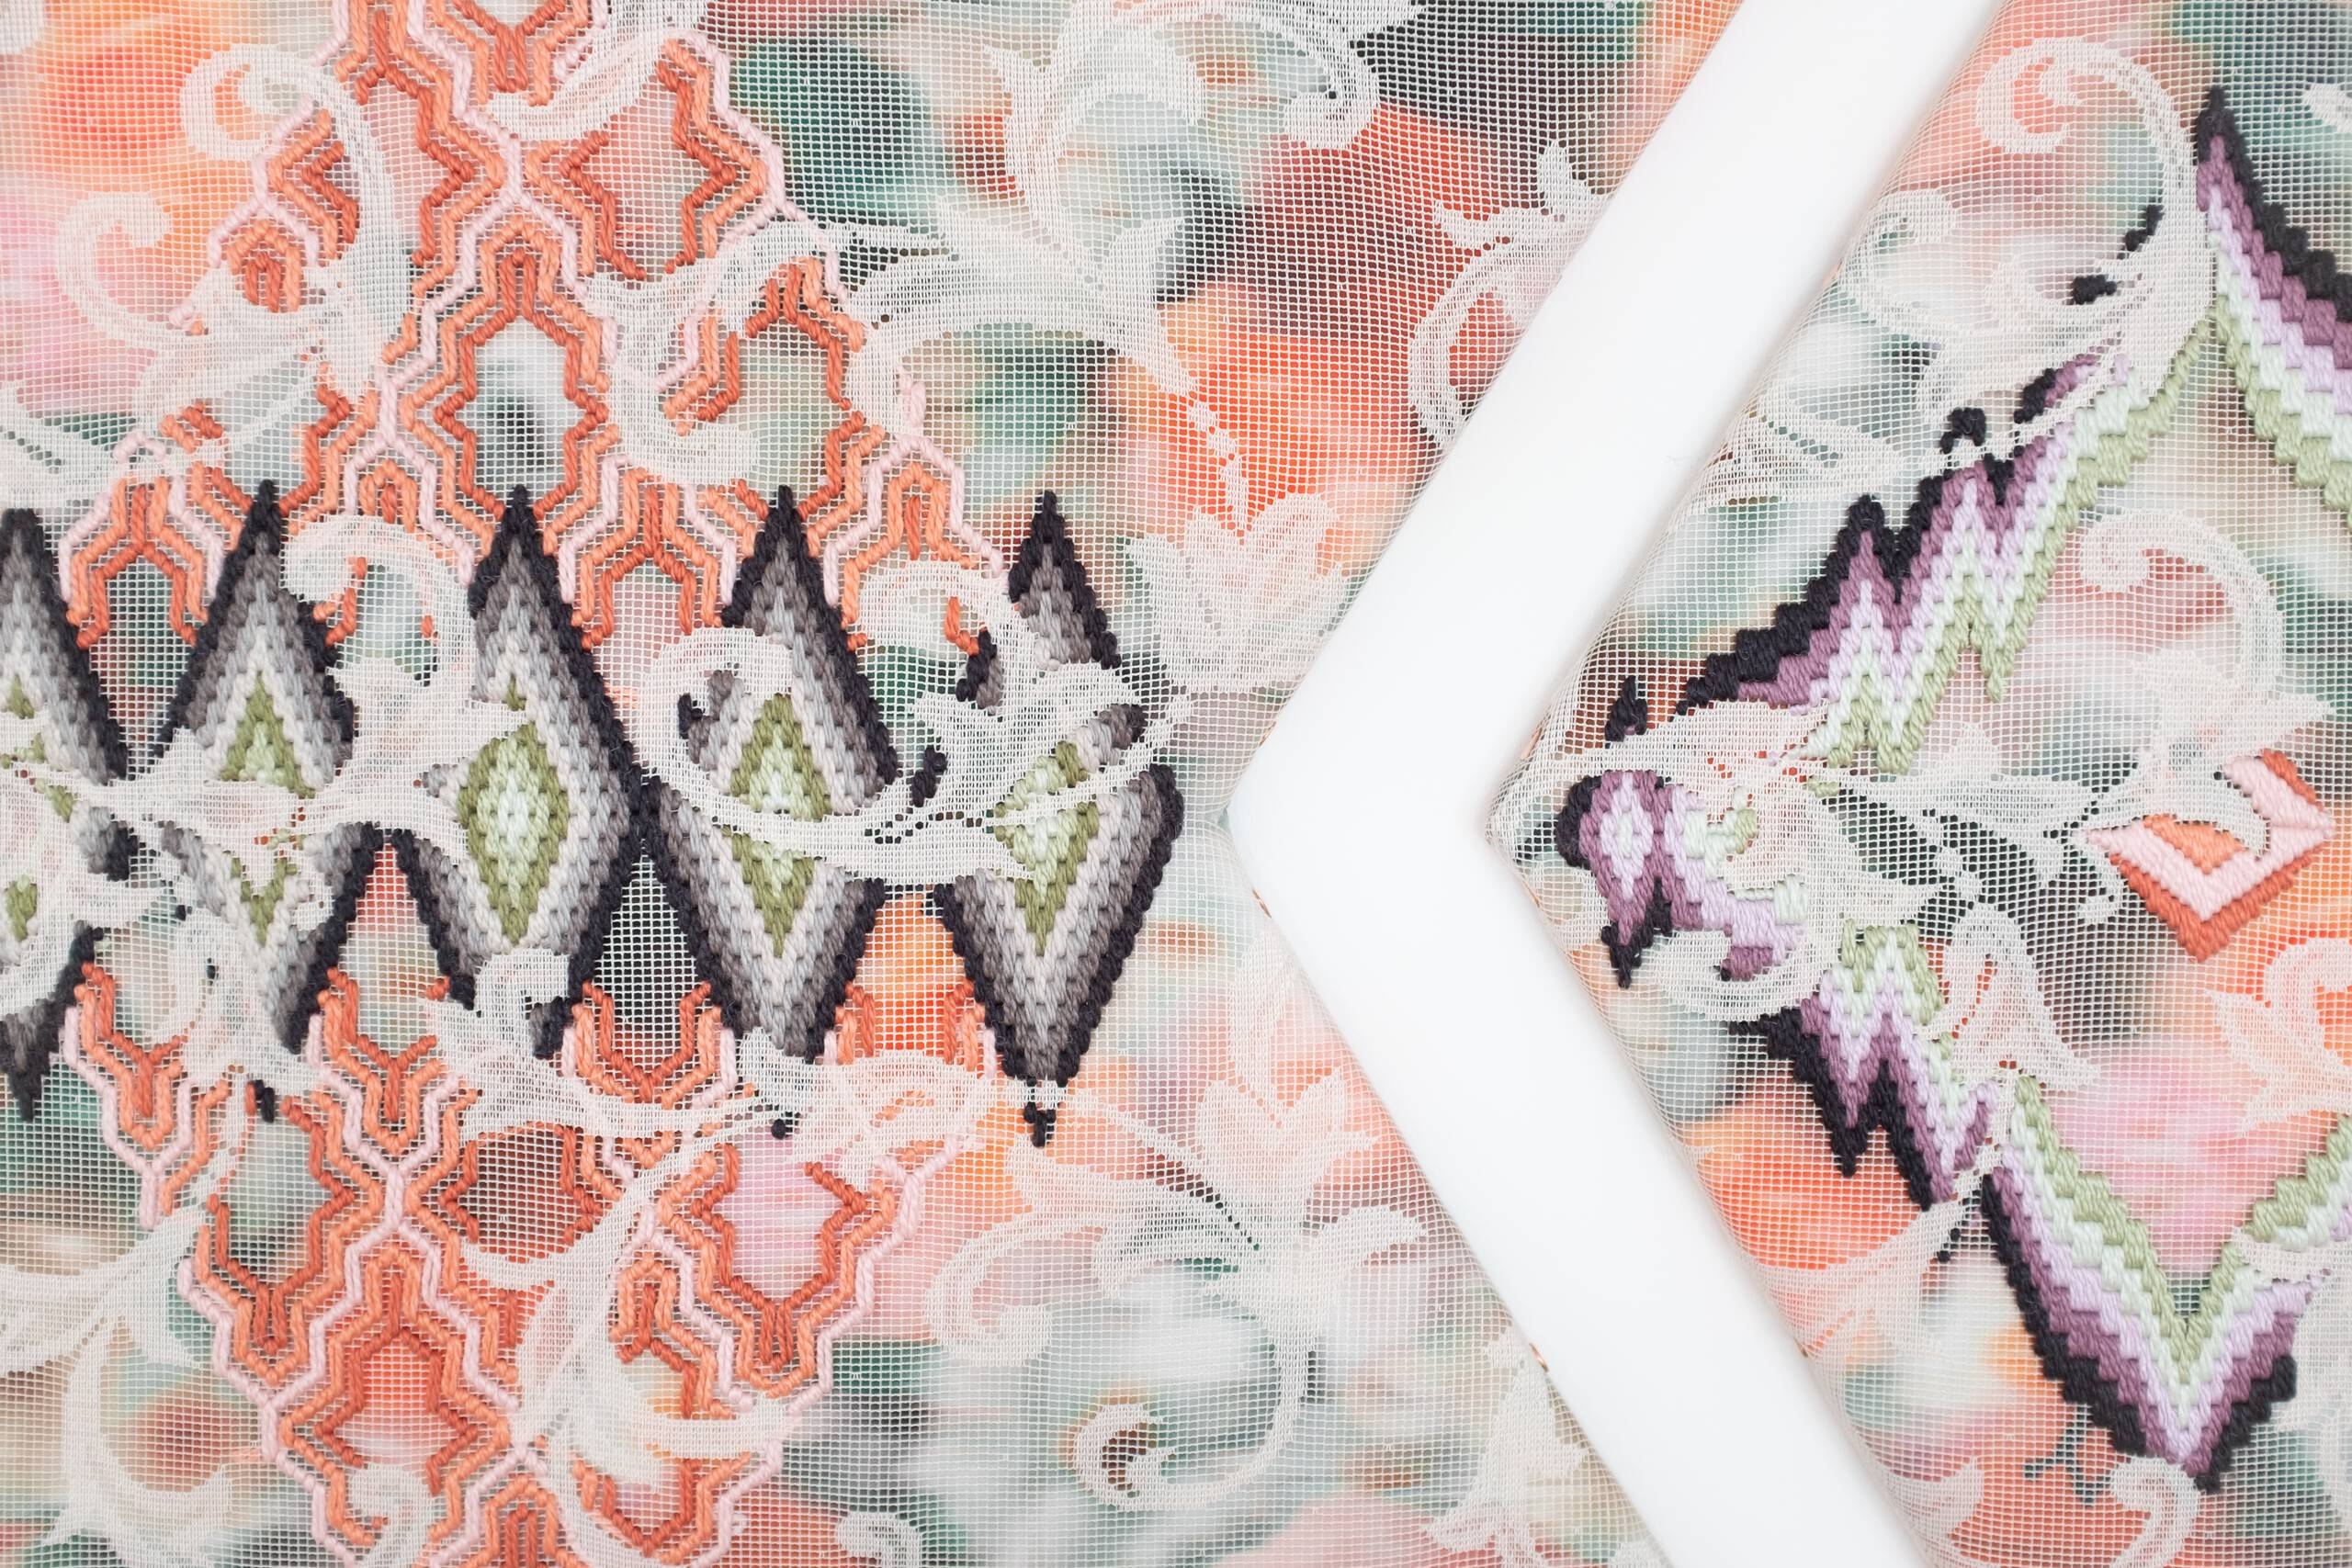 A certain slant of light (labyrinthine pathways of diamonds) [triptych], Hand-embroidered silk on lace over cotton fabric, 2020